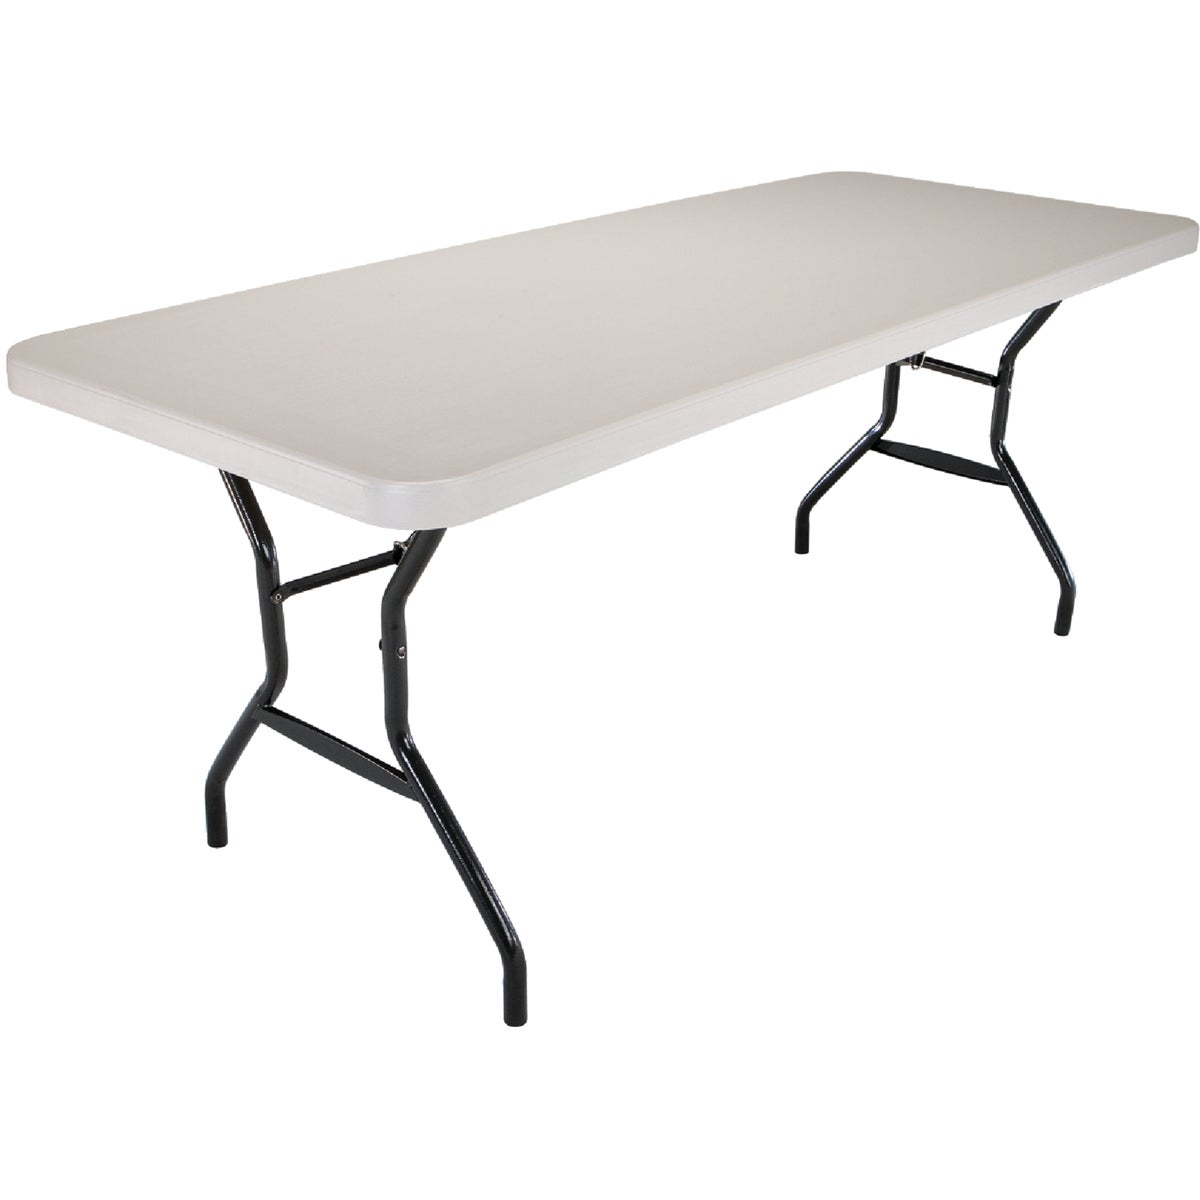 6' WHITE FOLDING TABLE - 2924 by Lifetime  Xiamen